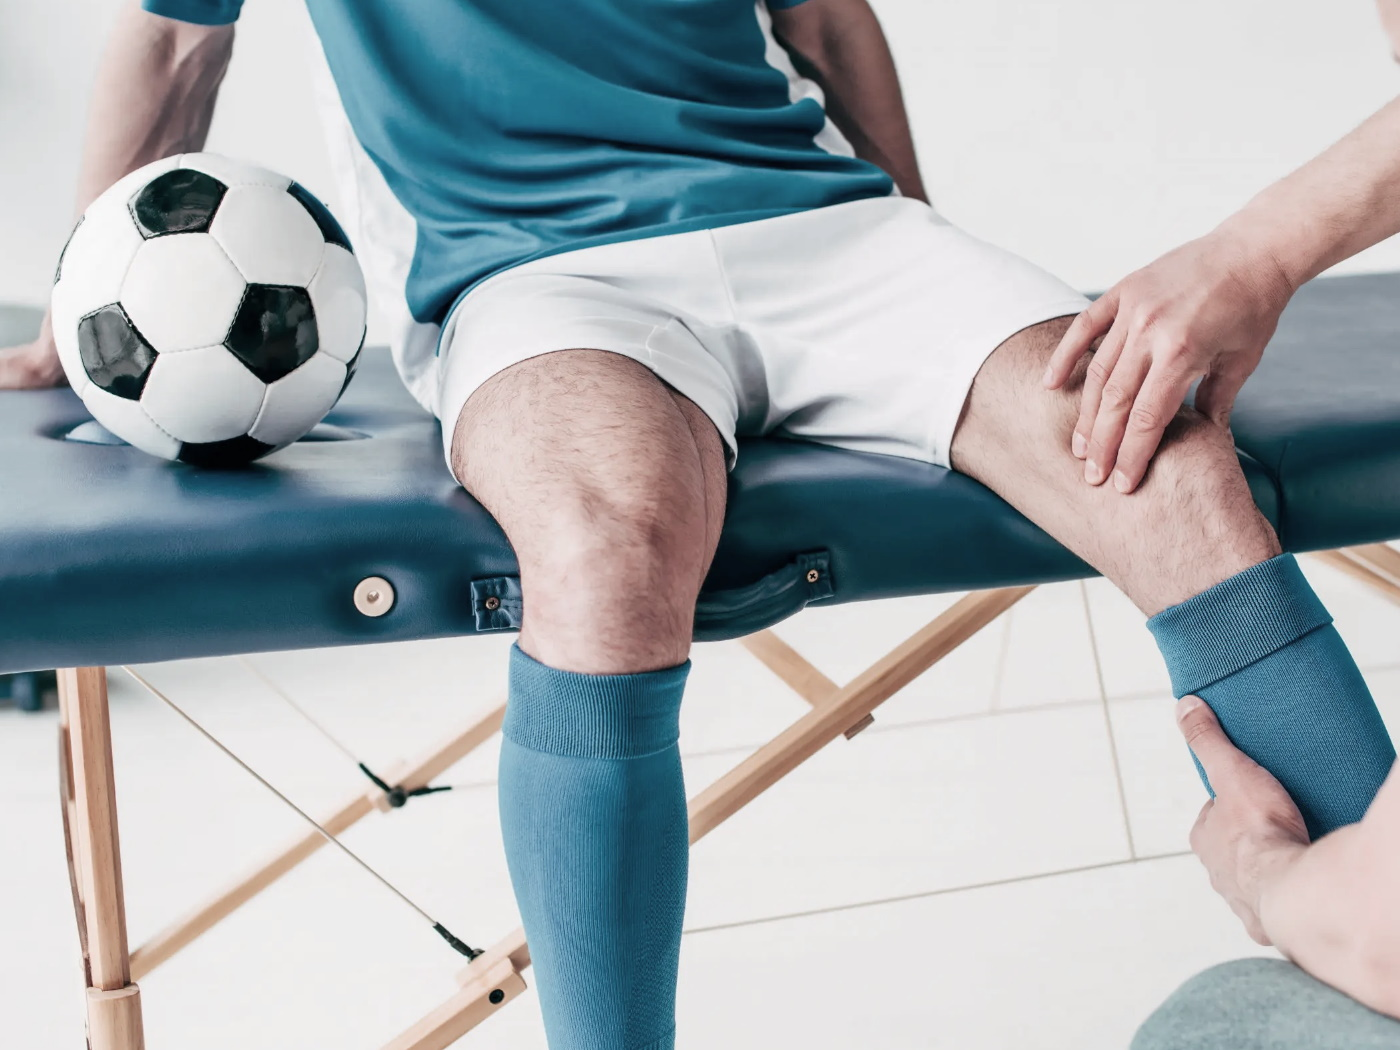 Taking Care Of Your Health While Being Engaged In Sports